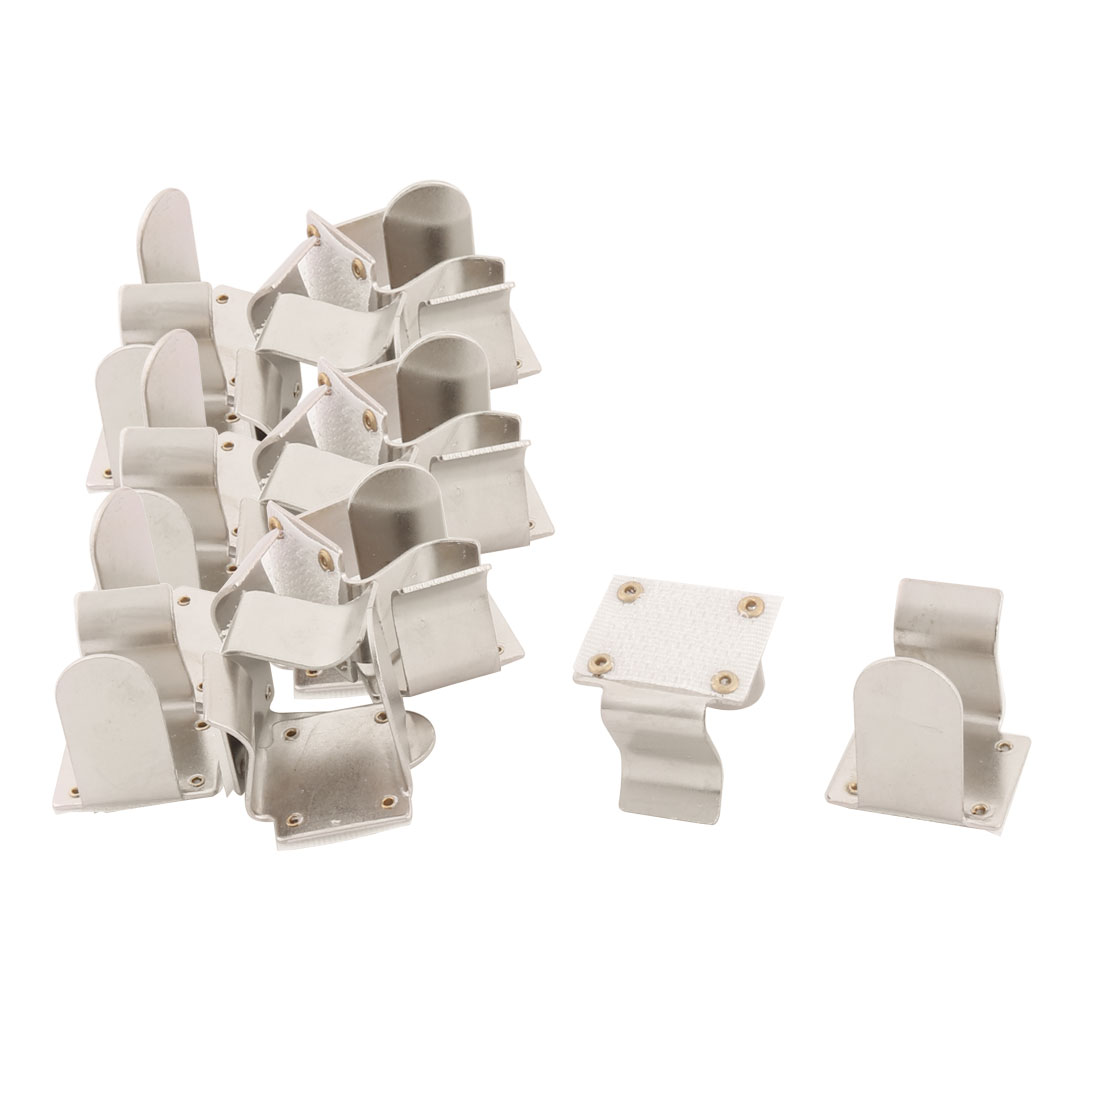 Household Picnic Metal Tablecloth Table Cover Fastener Clamp Clip Silver Tone 20 Pcs